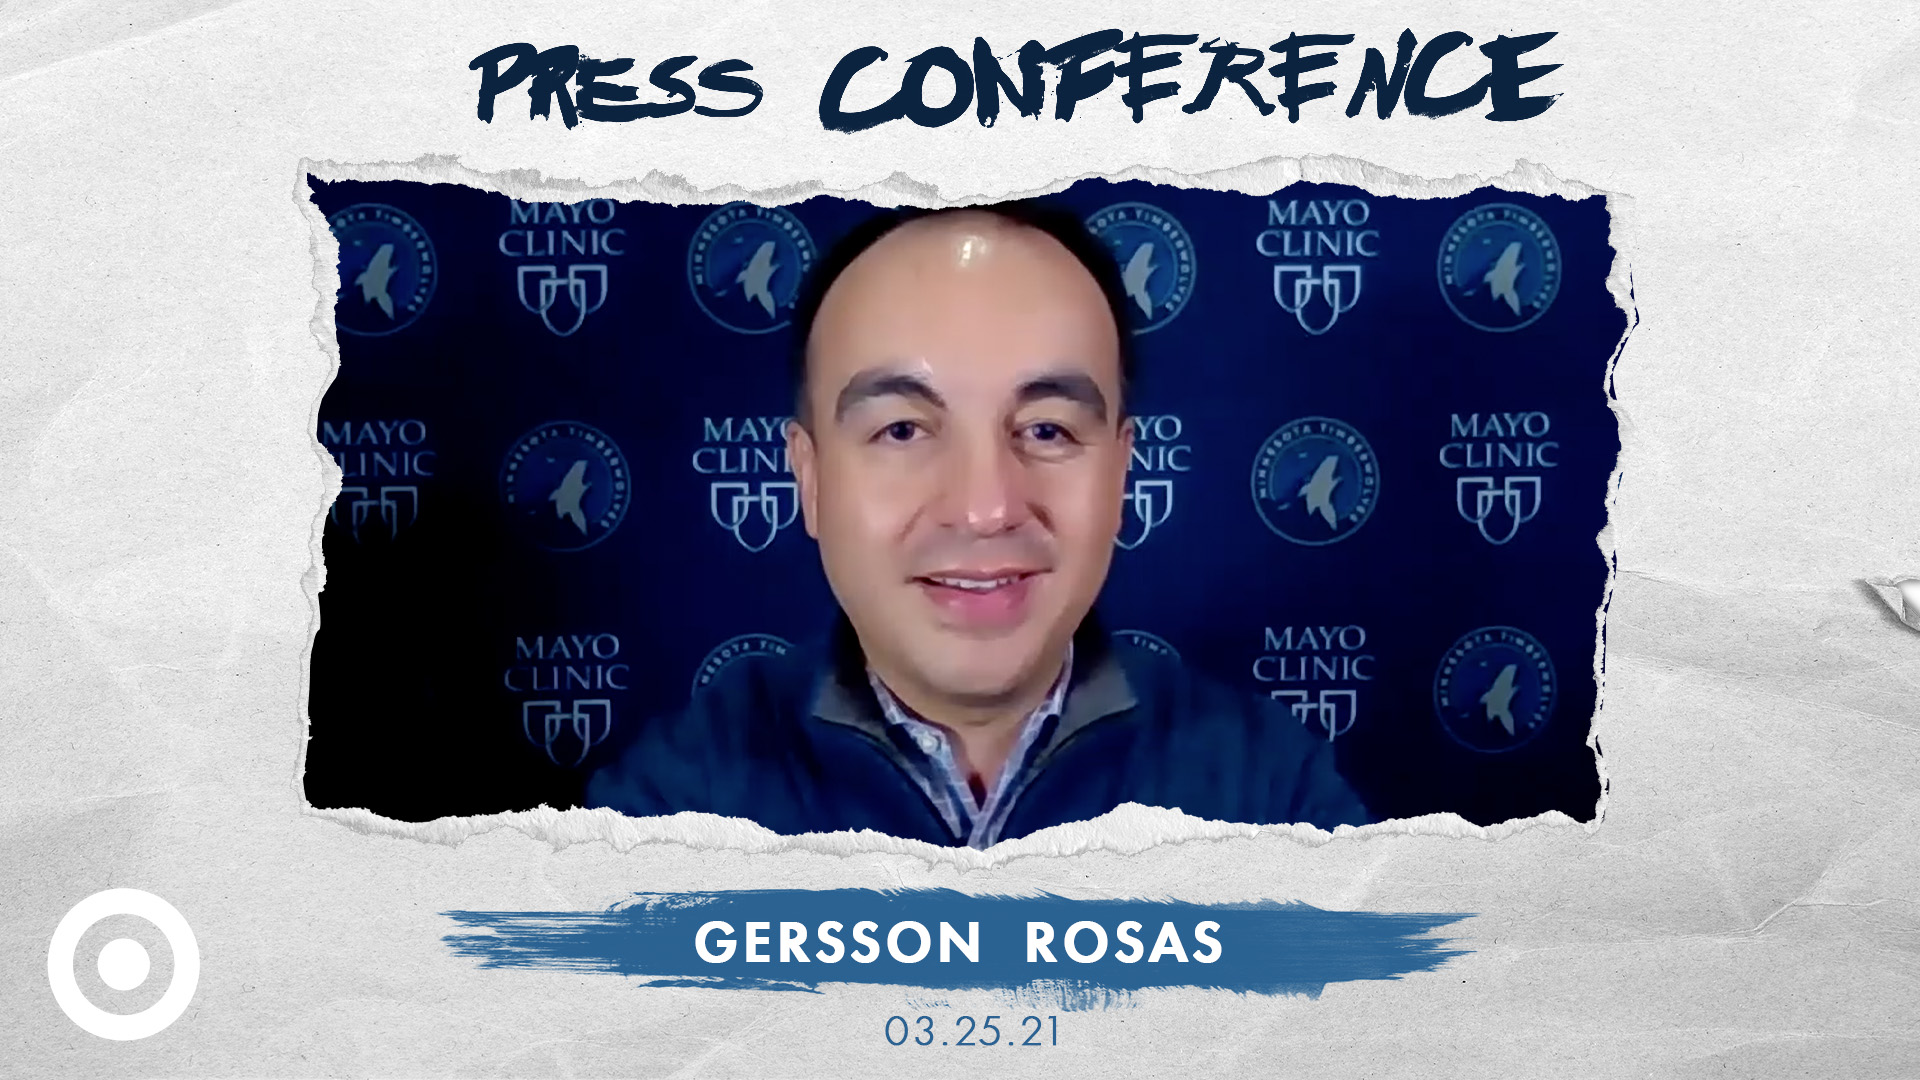 Gersson Rosas Trade Deadline Press Conference - March 25, 2021